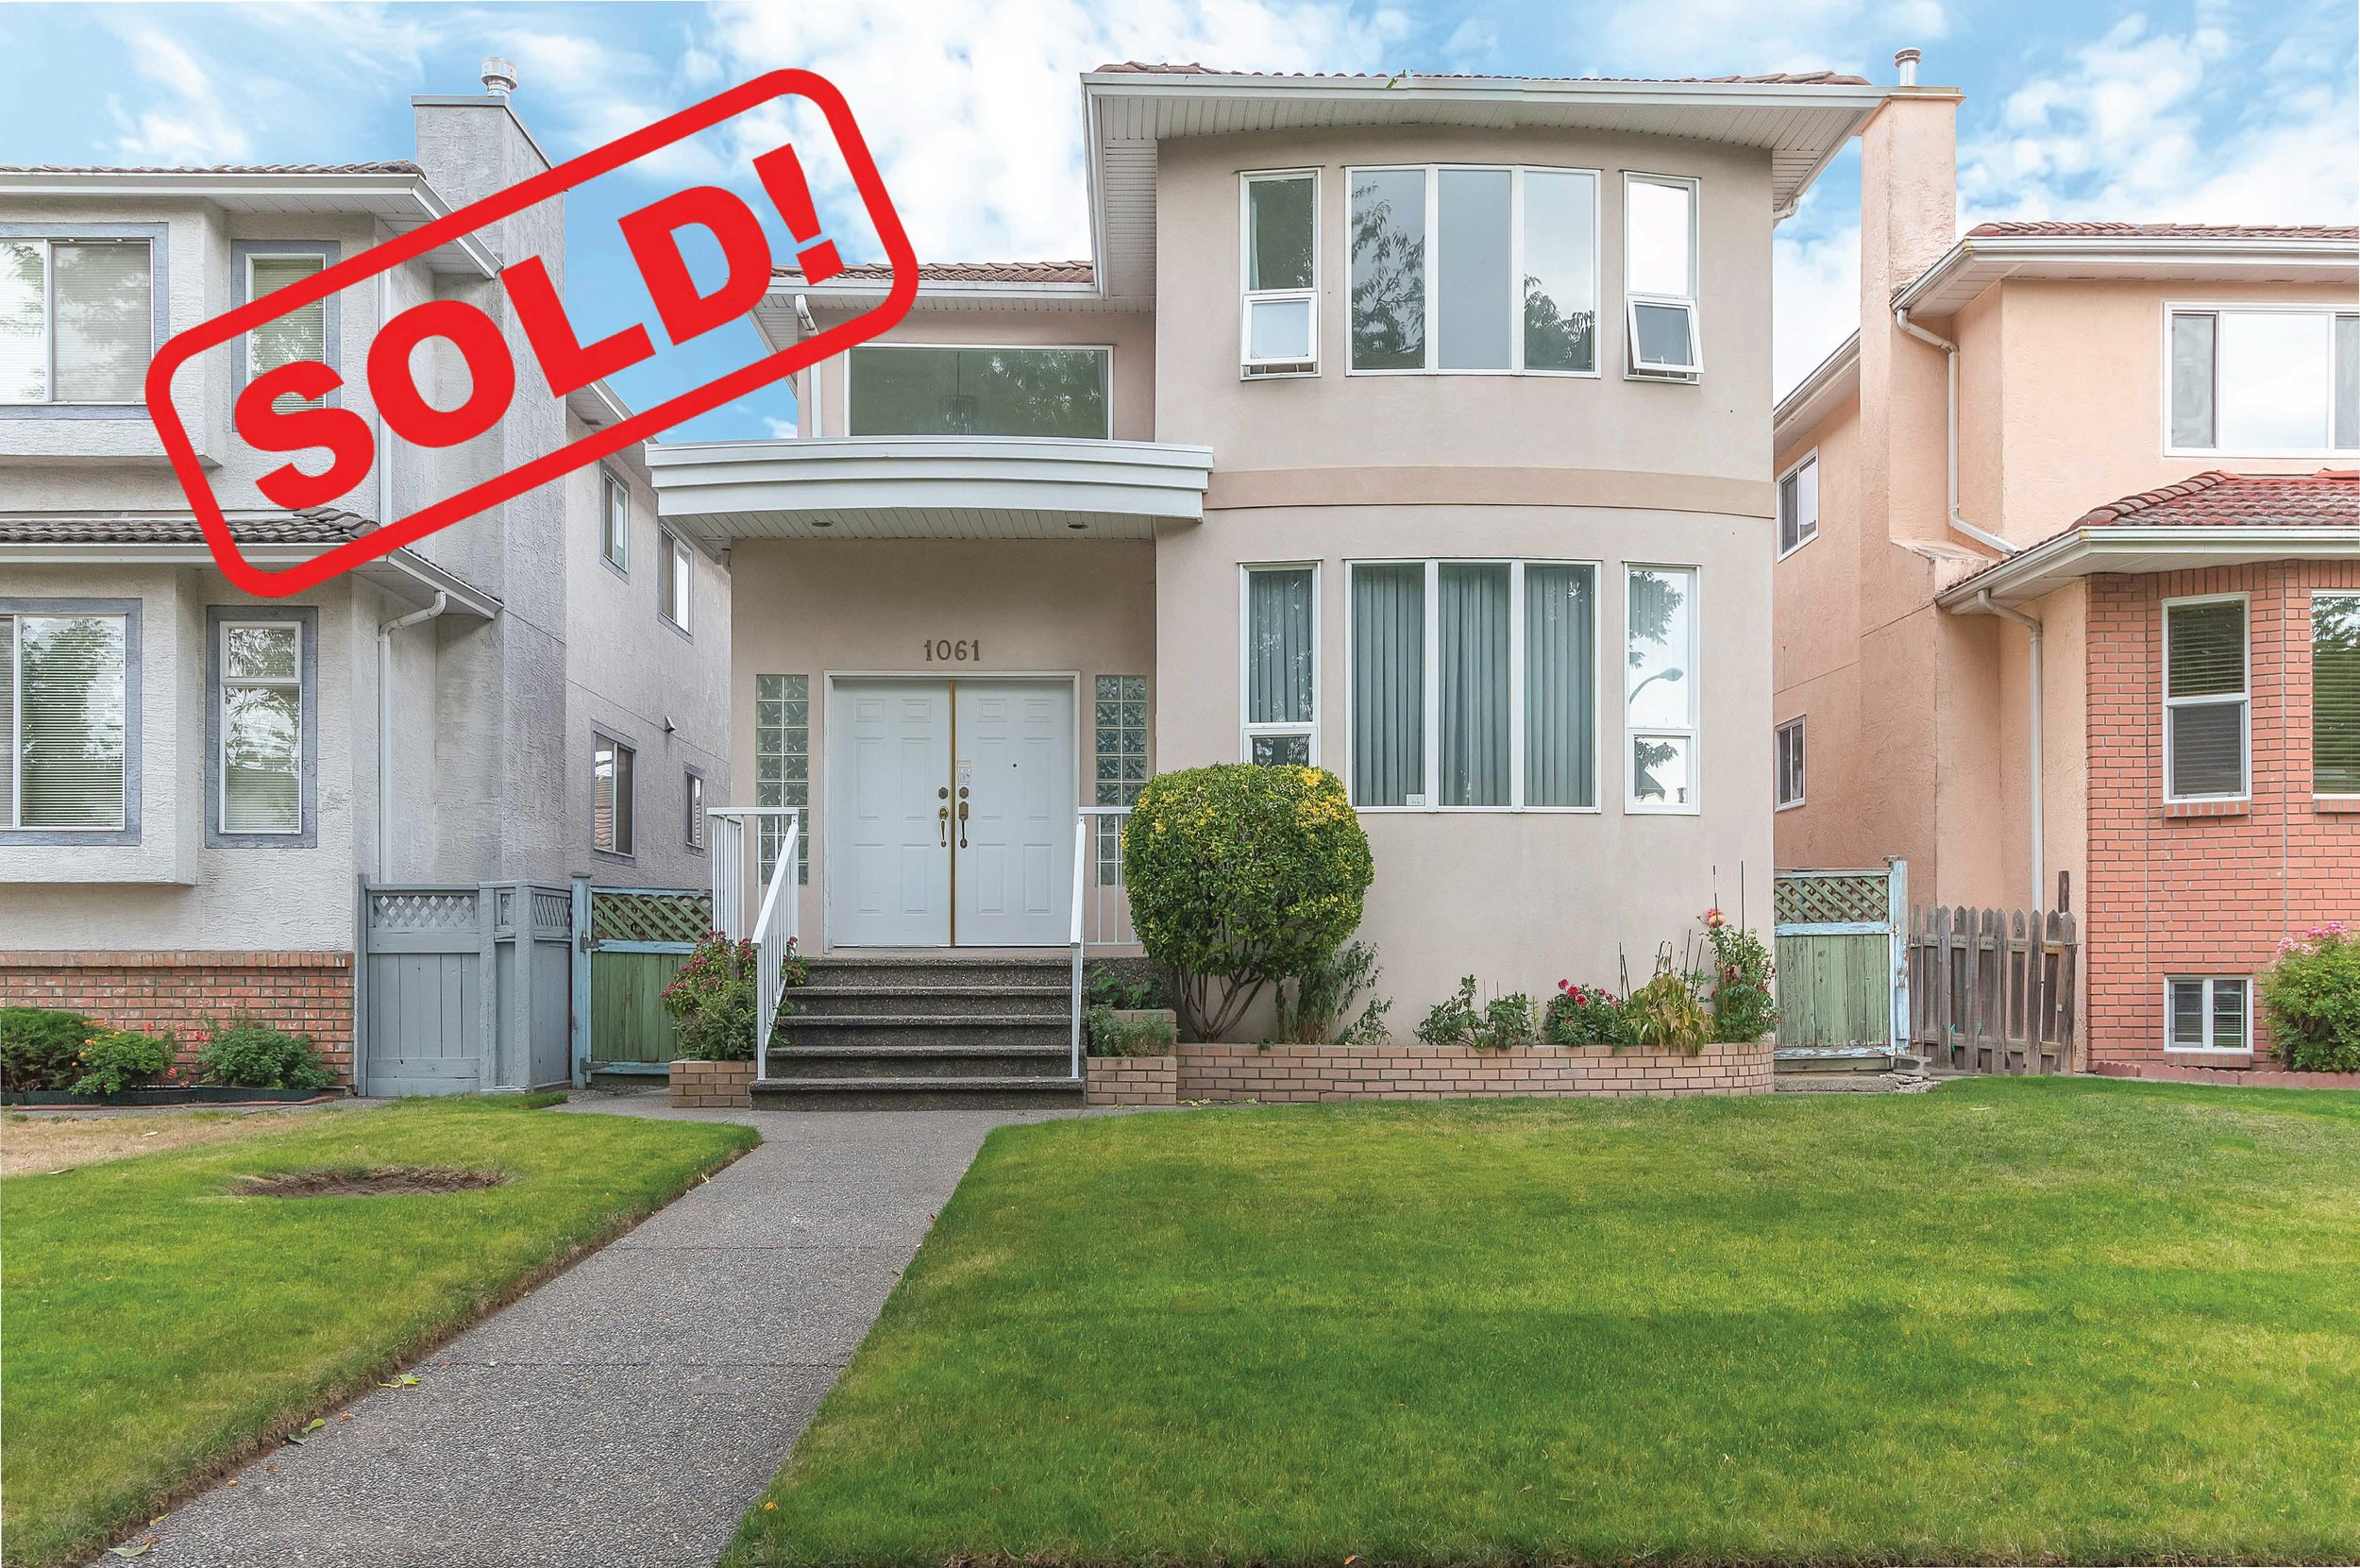 1061 EAST 51st AVENUE     SOLD FOR: $1,715,000  6 BED | 4 BATH | 2,625 SF